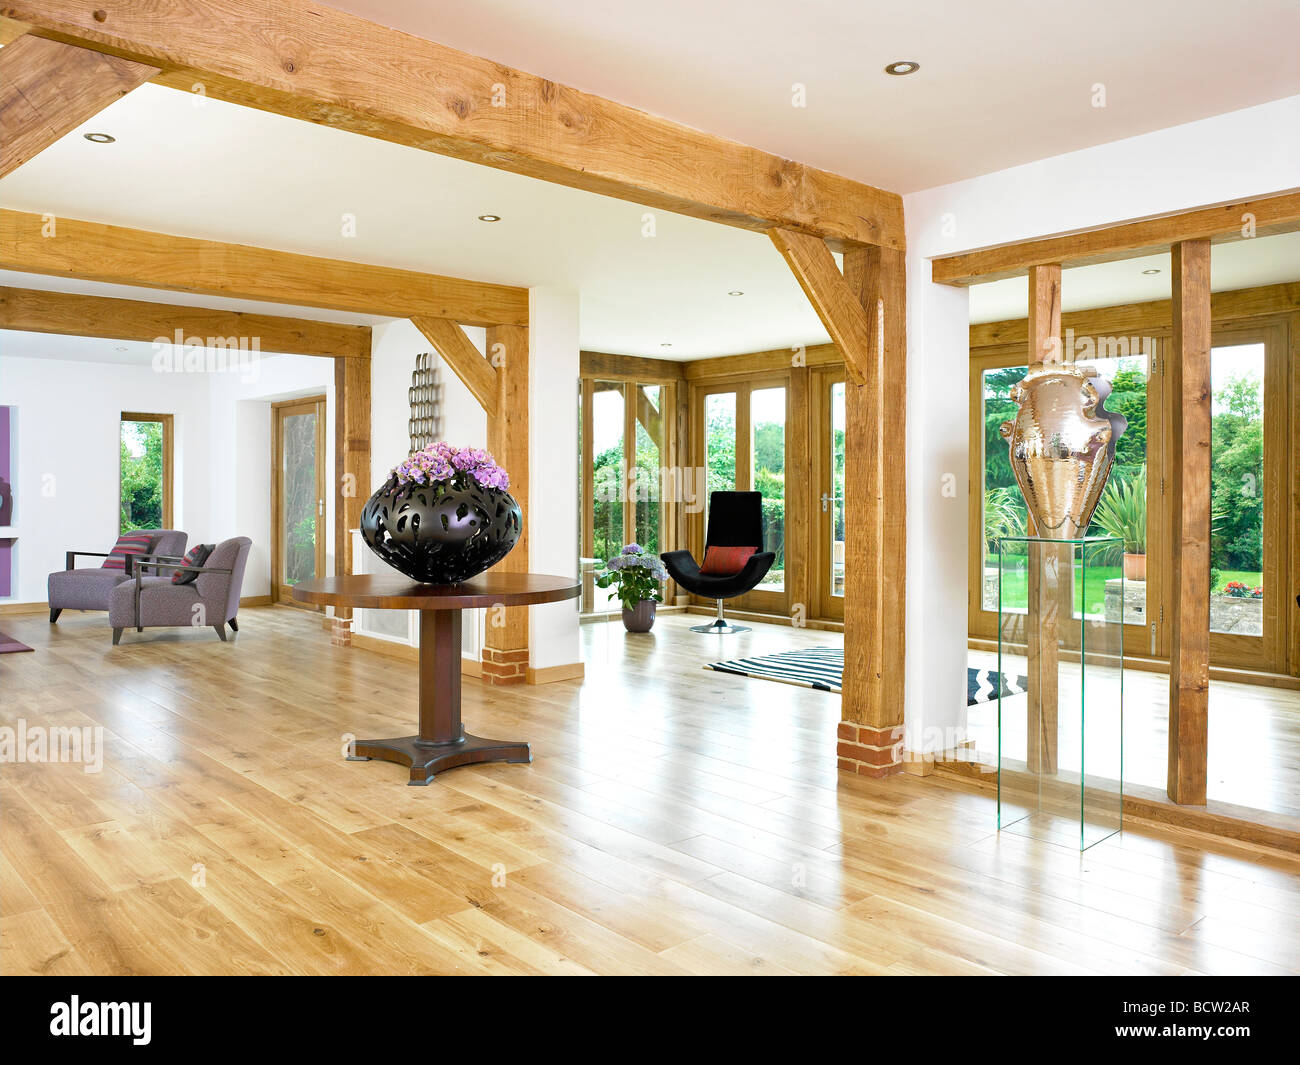 A modern open plan hallway living room area within a modern stock photo 25136911 alamy for Open plan hallway and living room